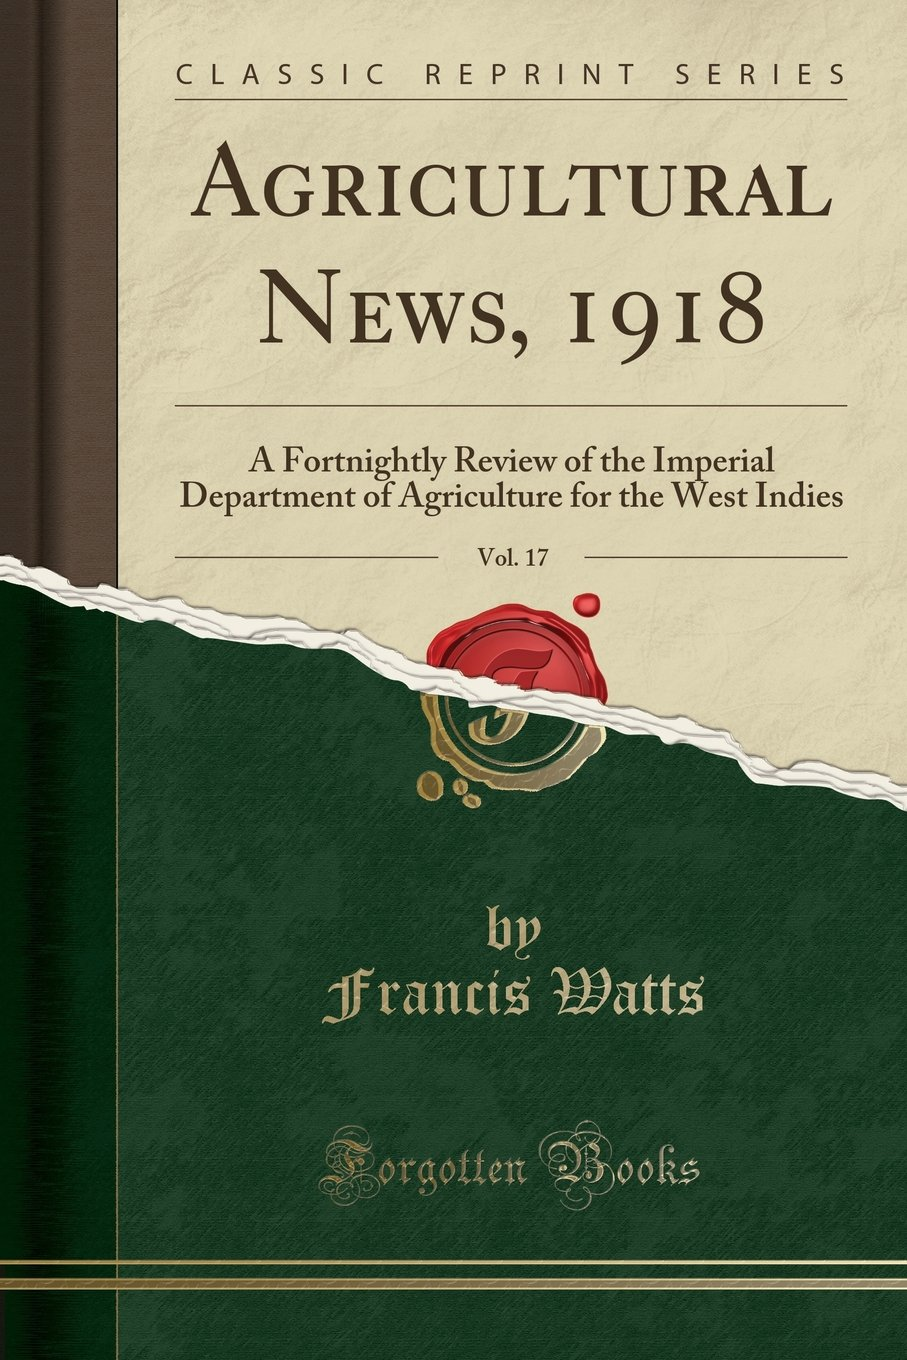 Download Agricultural News, 1918, Vol. 17: A Fortnightly Review of the Imperial Department of Agriculture for the West Indies (Classic Reprint) ebook